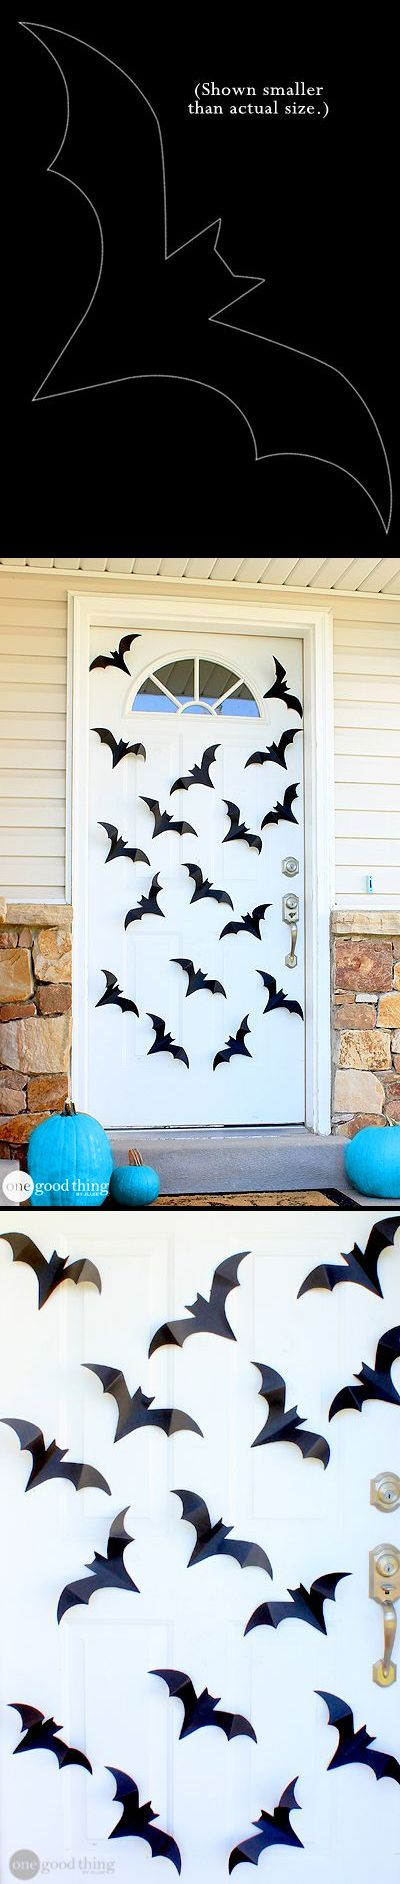 Spiders  Bats Oh My! Dress Up Your Front Door With This Simple DIY - halloween decoration ideas homemade